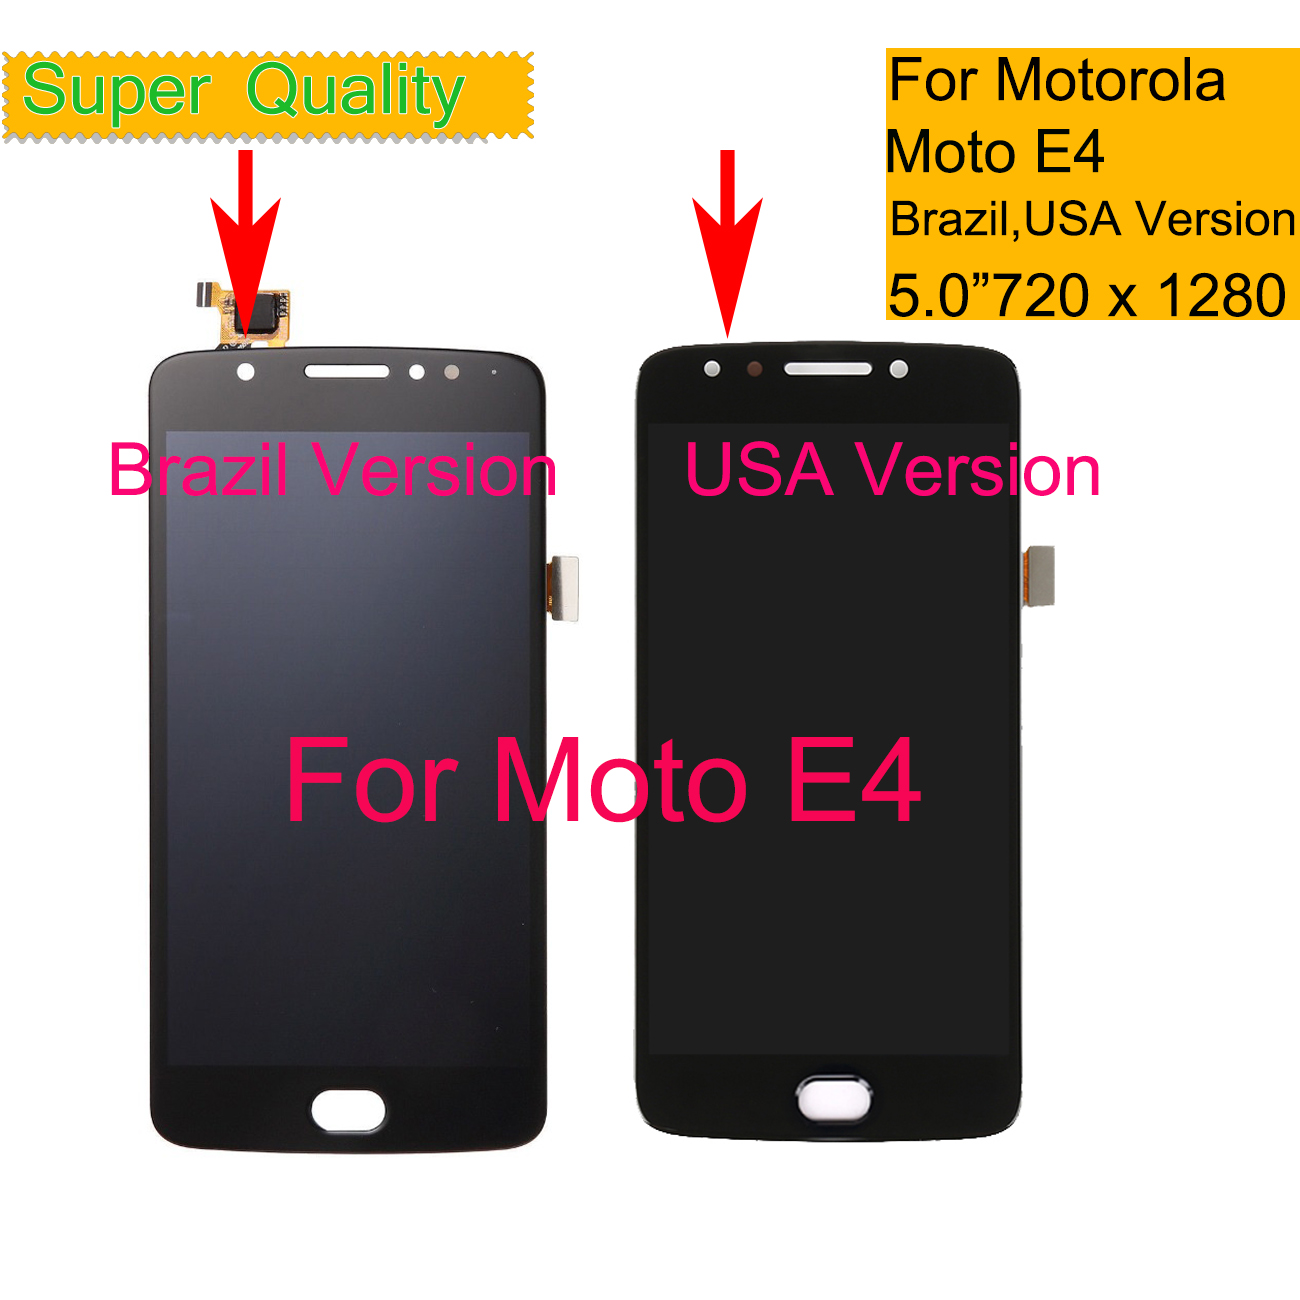 <font><b>LCD</b></font> Display For Motorola Moto E4 XT1763 <font><b>XT1762</b></font> XT1772 <font><b>LCD</b></font> Display Touch Screen Panel with Digitizer Assembly Replacement image